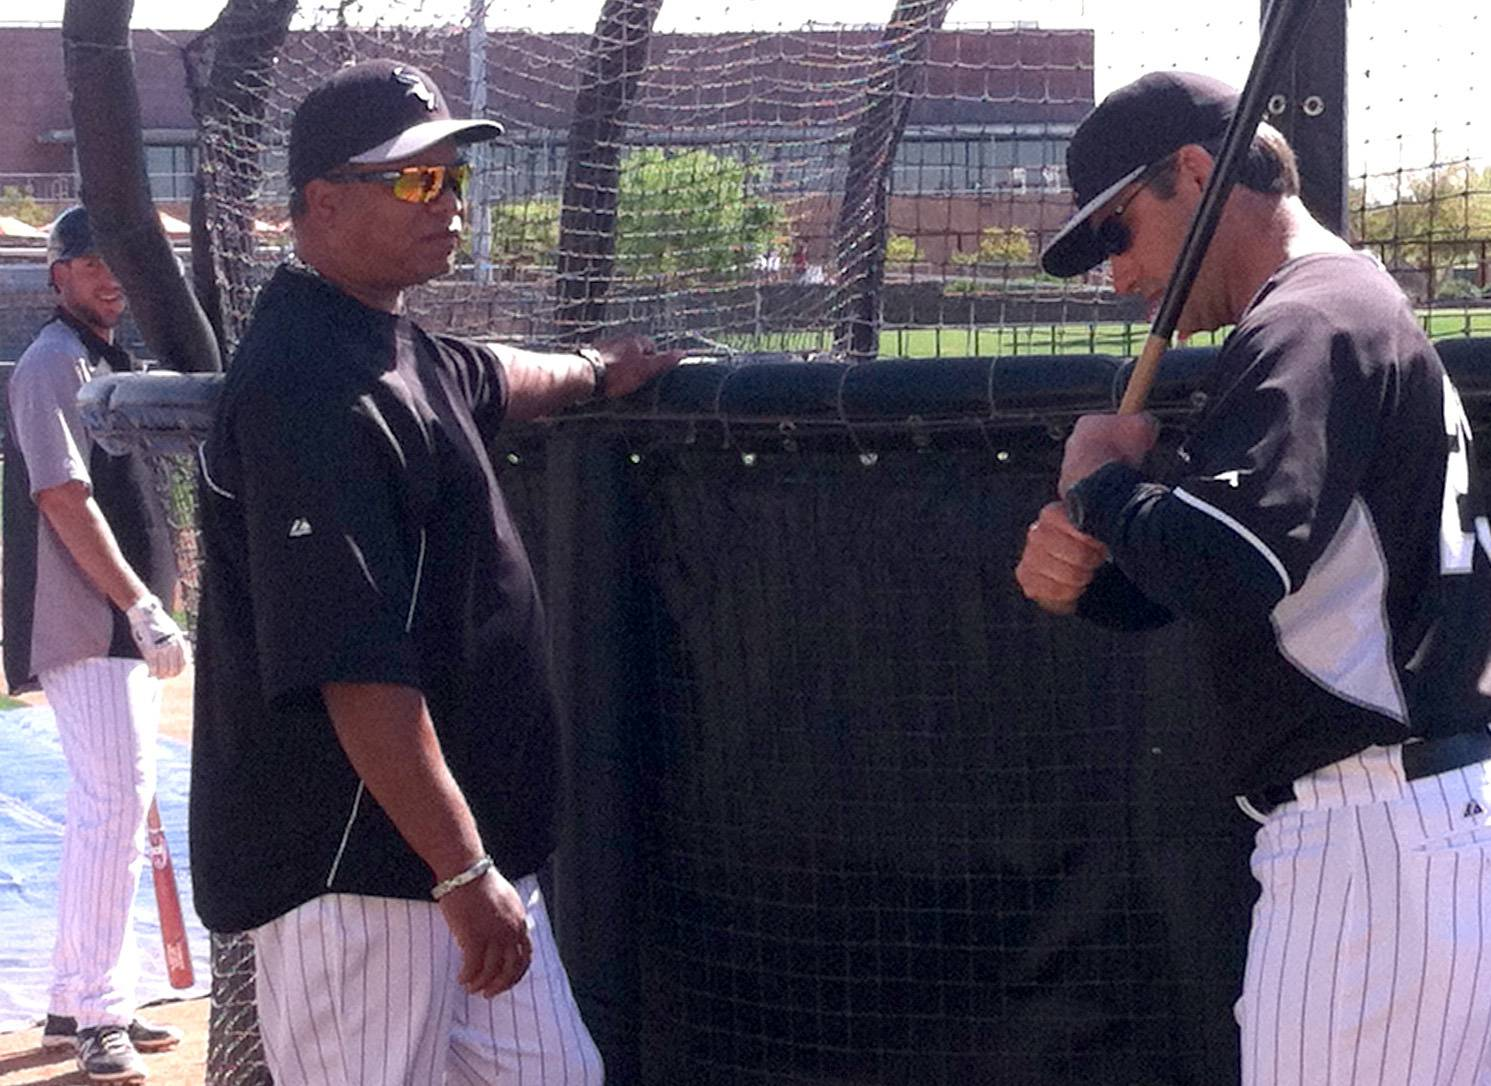 White Sox hitting coach Todd Steverson, left, gets ready for batting practice Friday afternoon at the team's spring training facility as manager Robin Ventura joins the discussion.